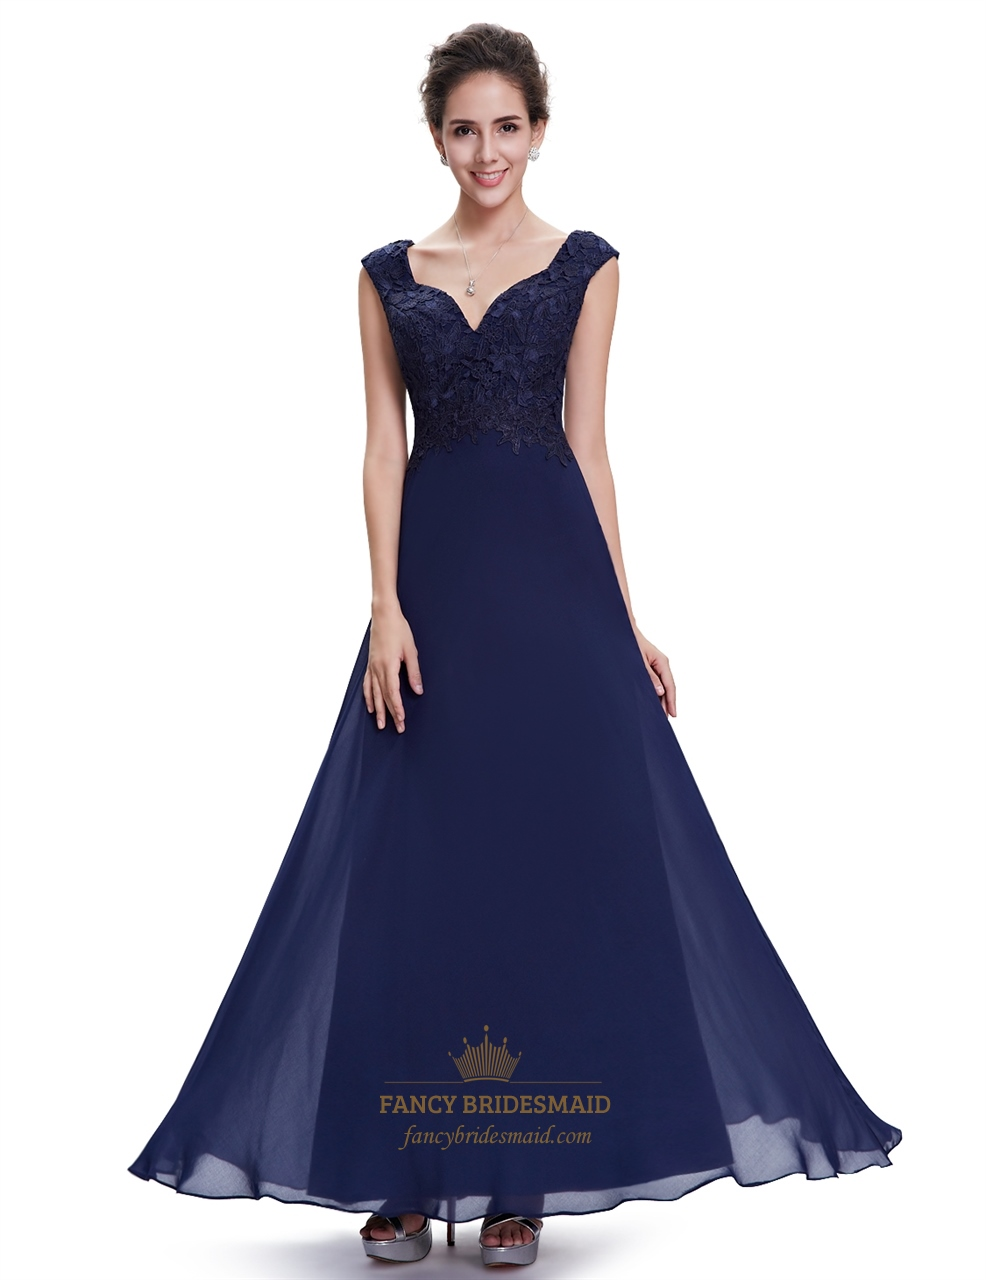 Navy blue cap sleeves chiffon long bridesmaid dresses with lace navy blue cap sleeves chiffon long bridesmaid dresses with lace bodice ombrellifo Image collections